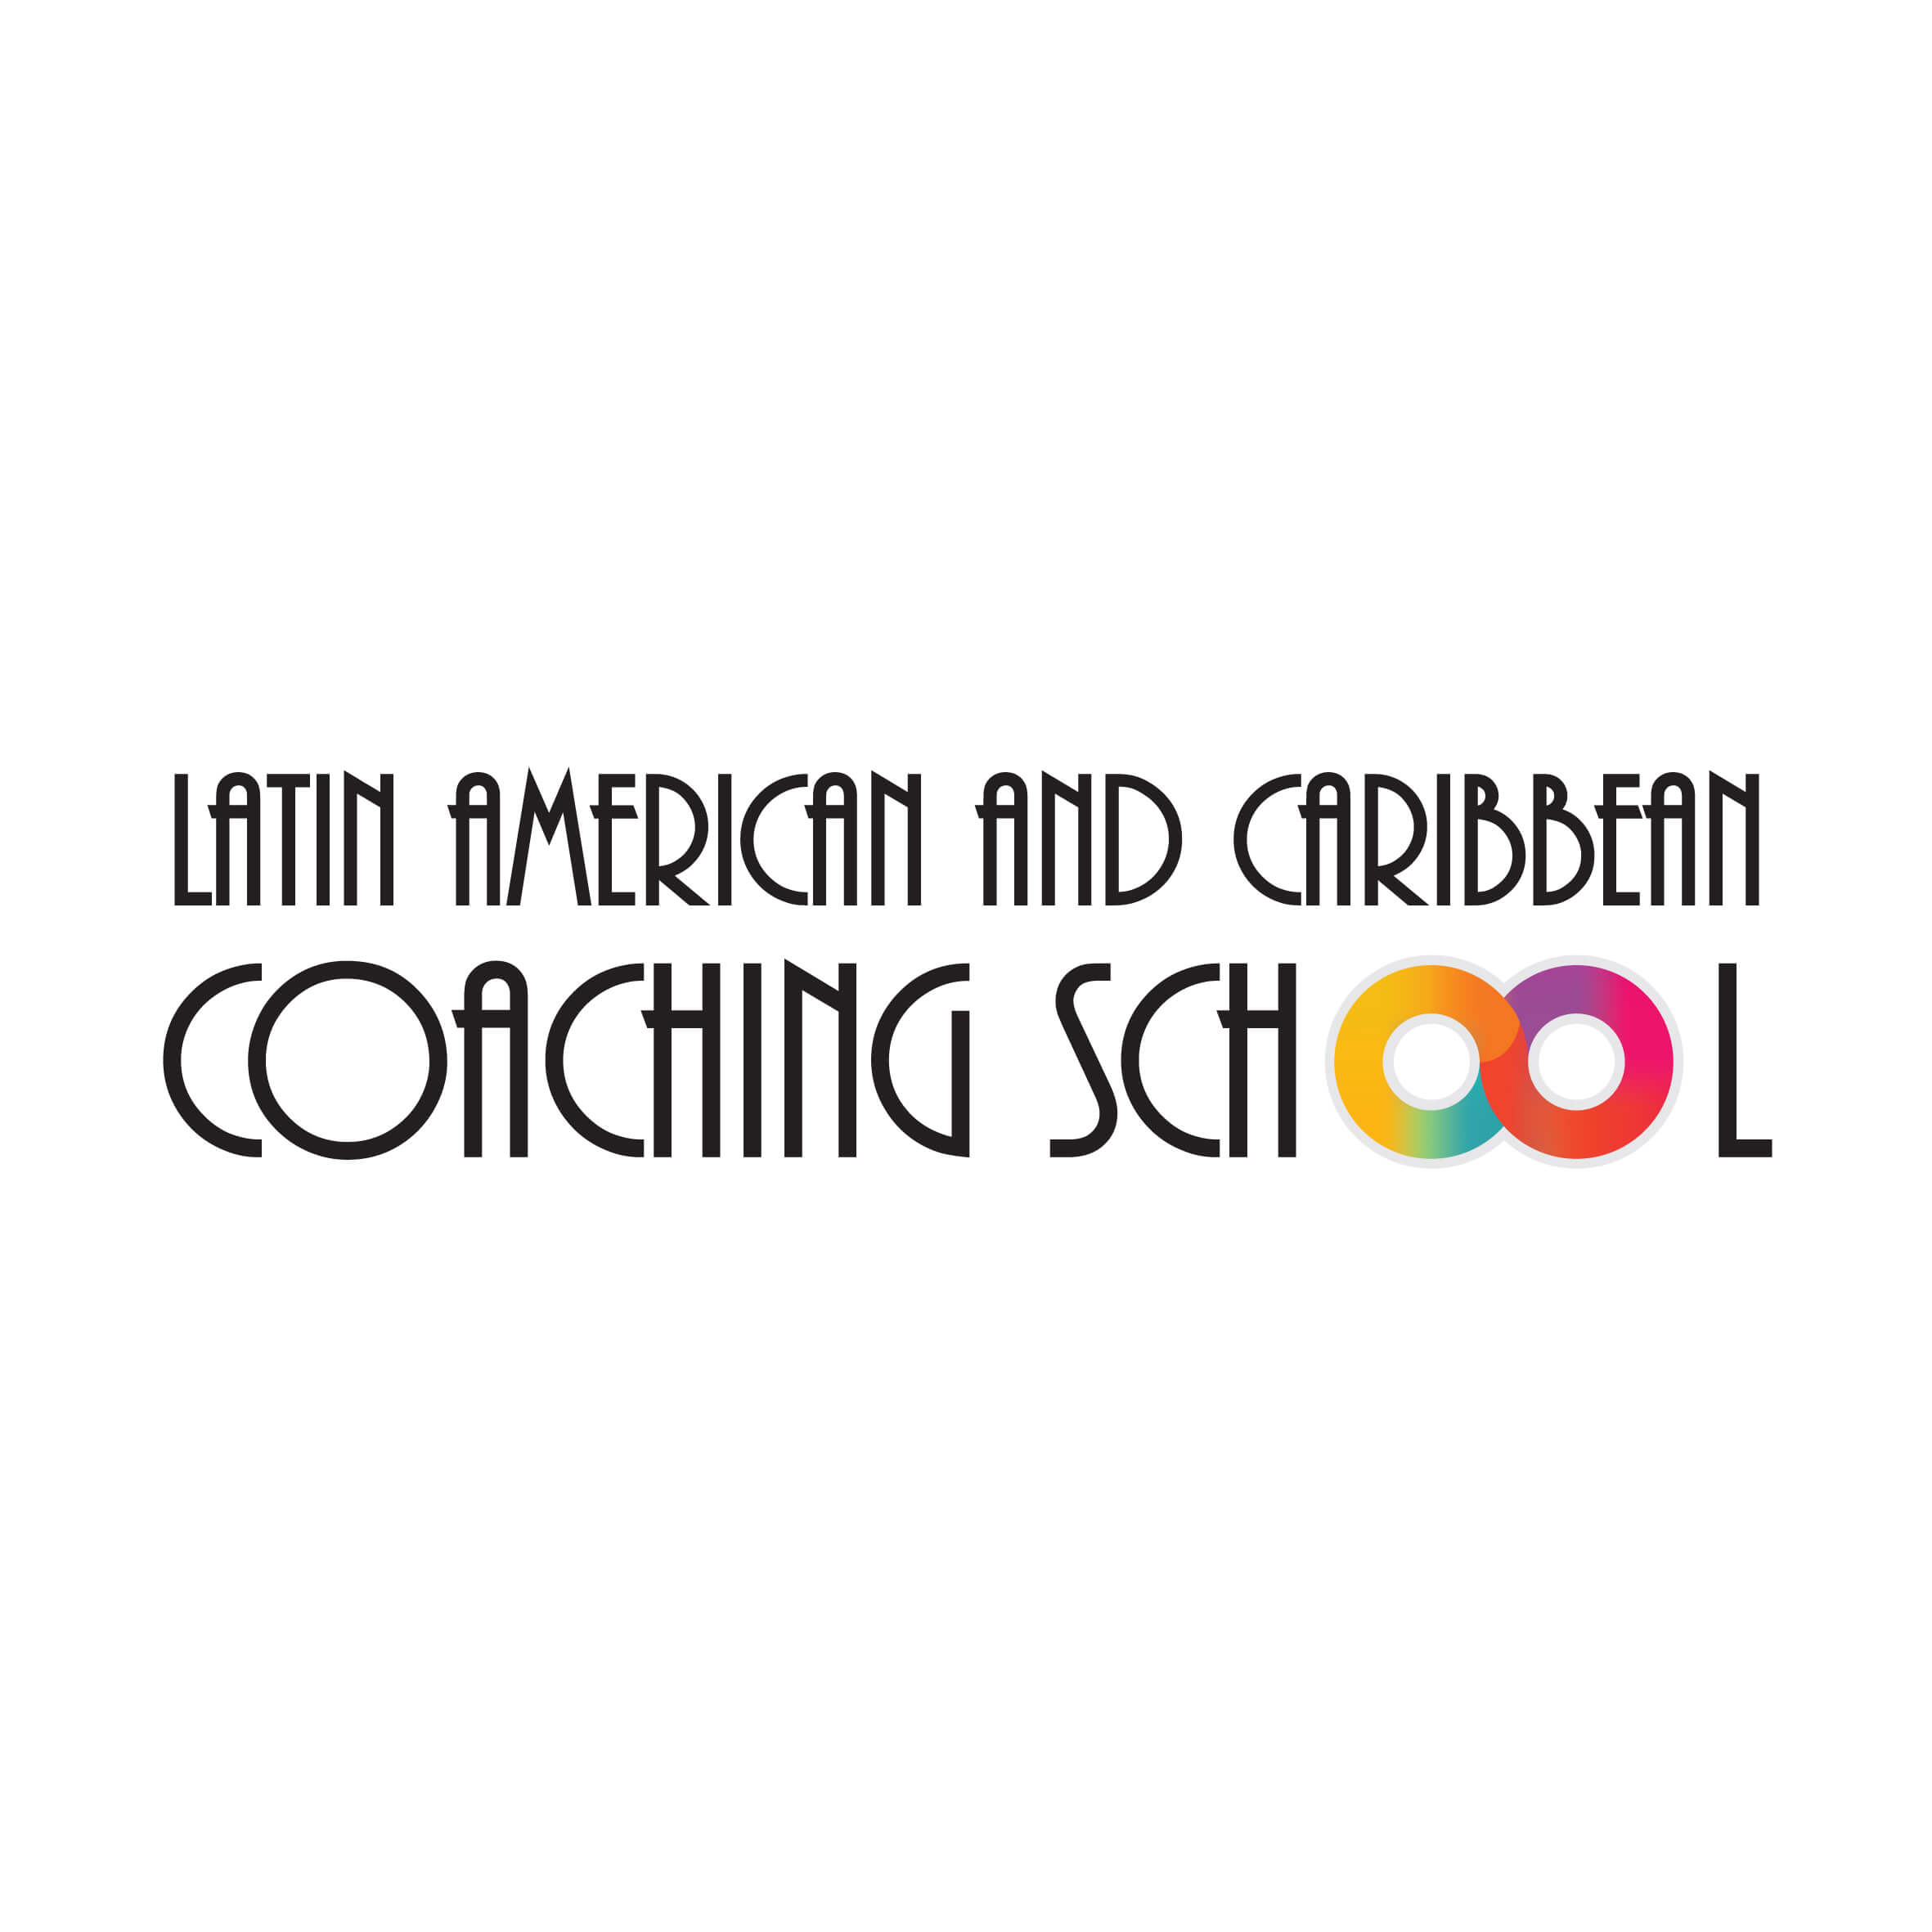 Coaching-School